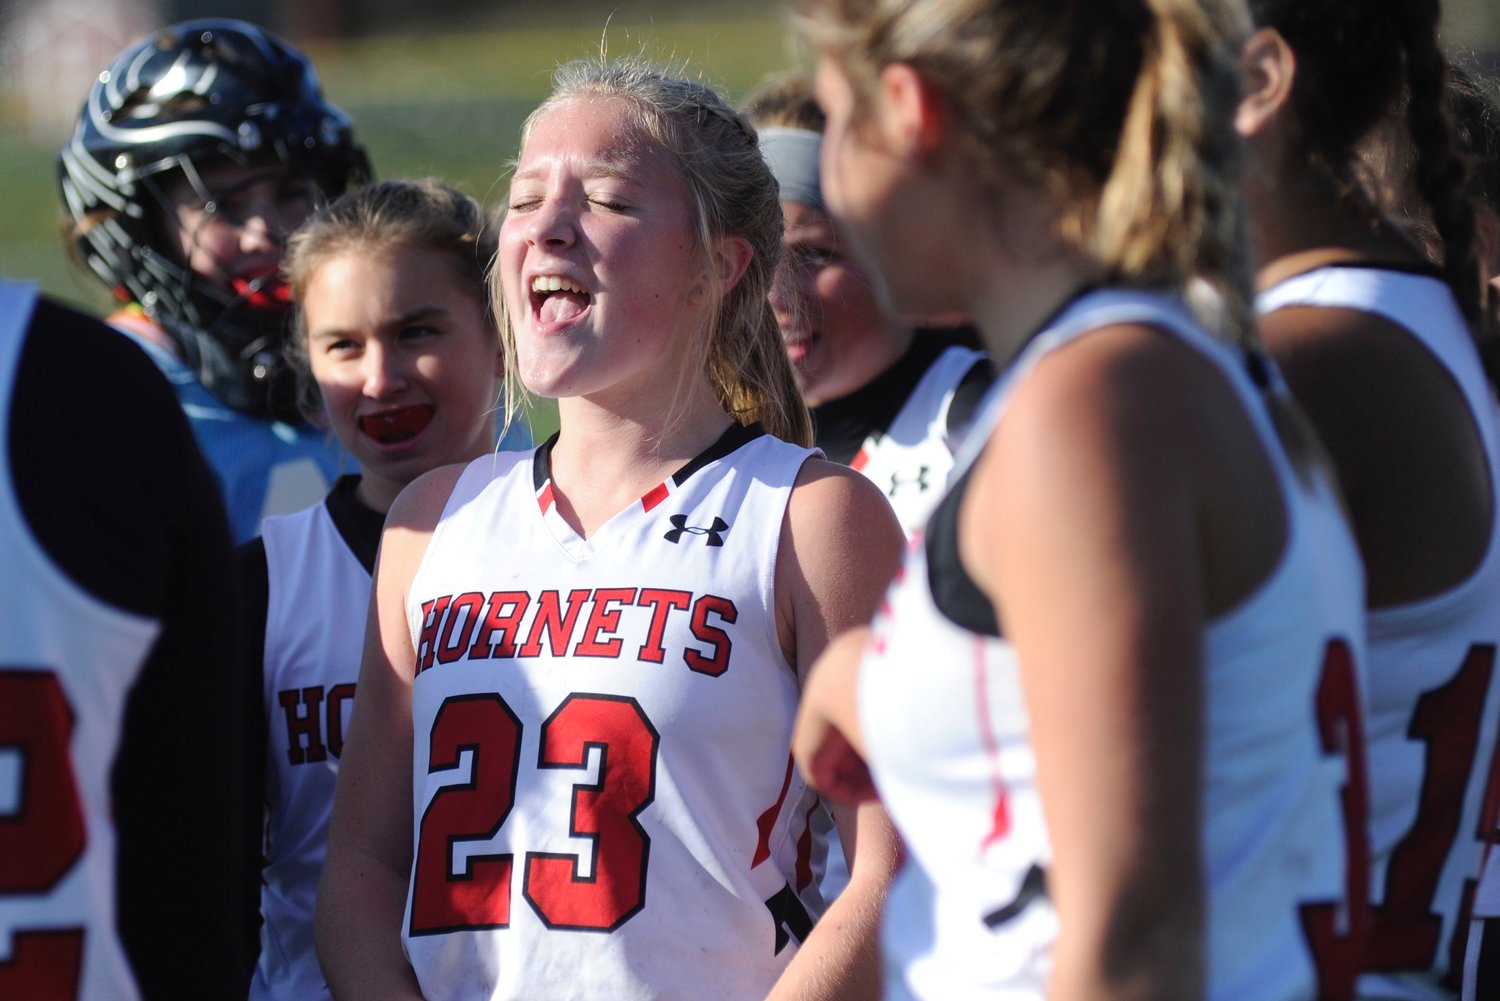 A joyful win. Honesdale's Claire Campen celebrates the semi-final victory with her teammates.